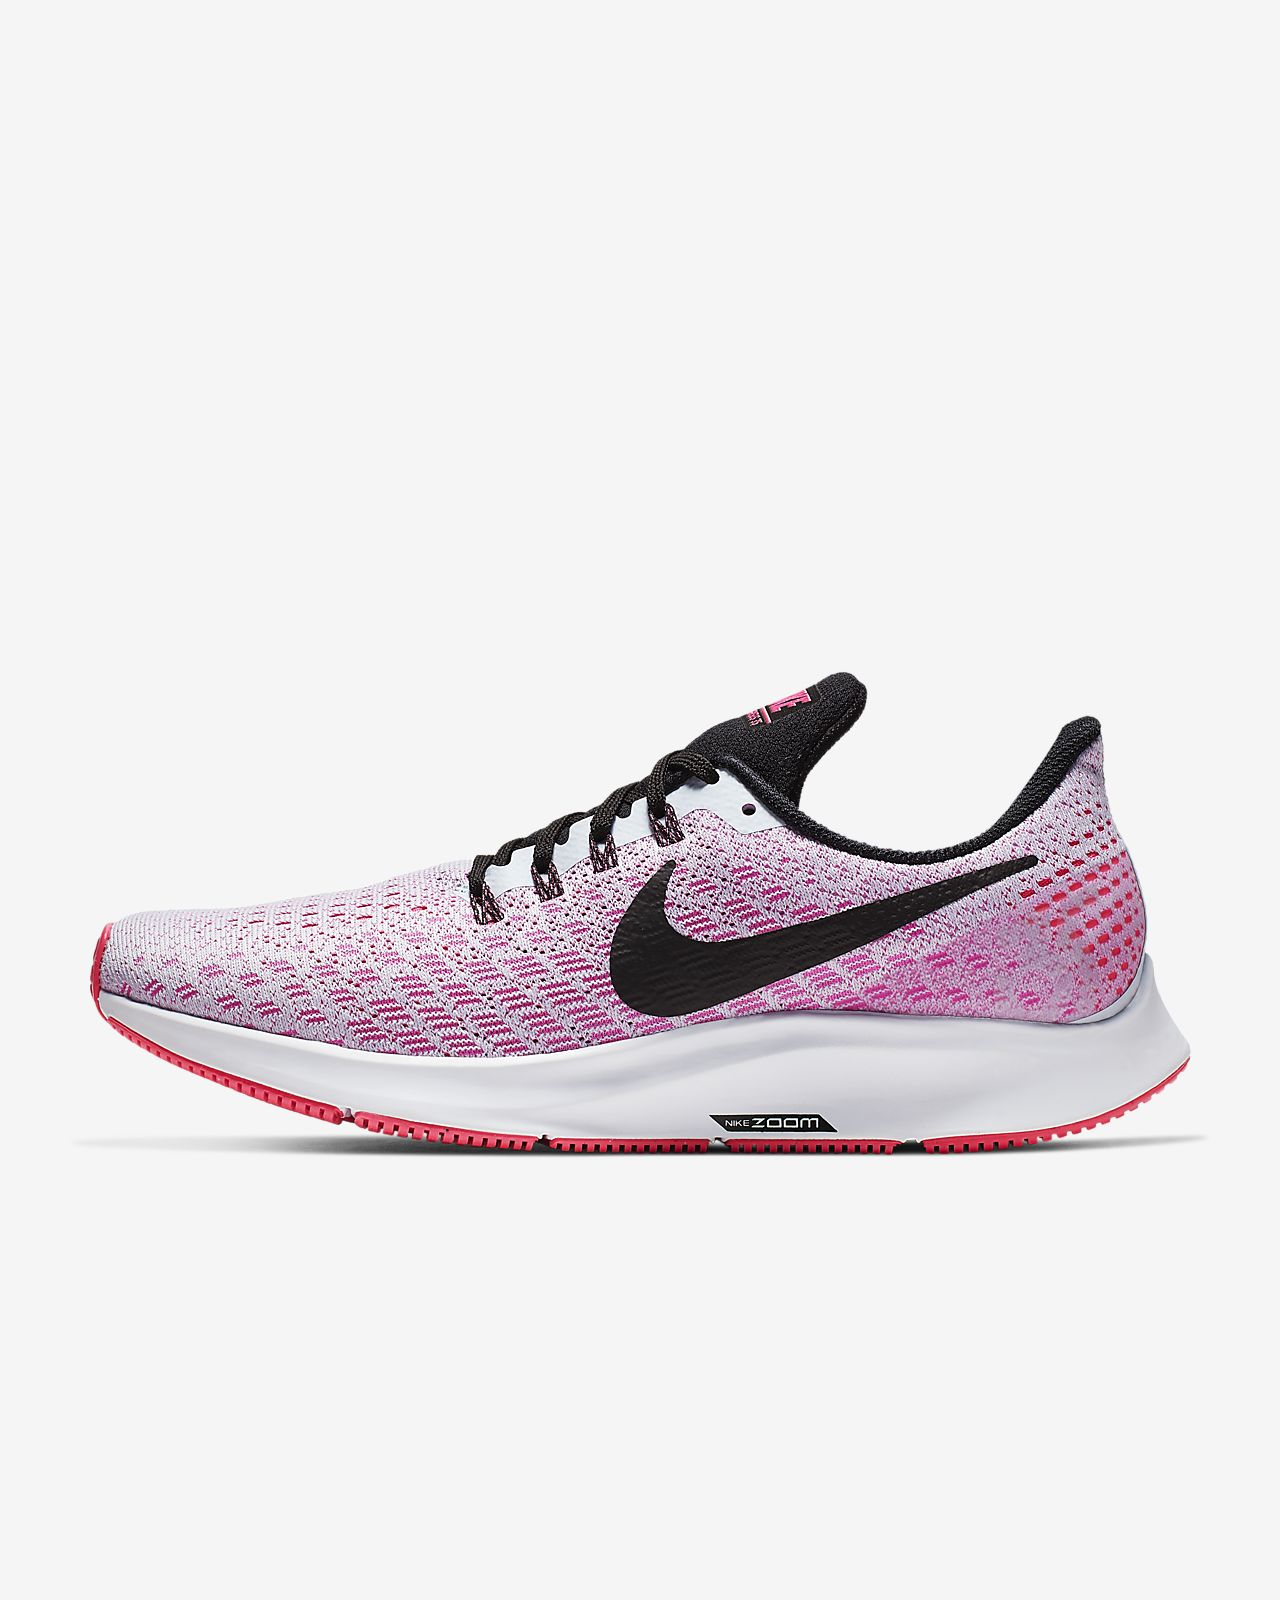 the best attitude 260a1 e9d93 ... Nike Air Zoom Pegasus 35 Women s Running Shoe